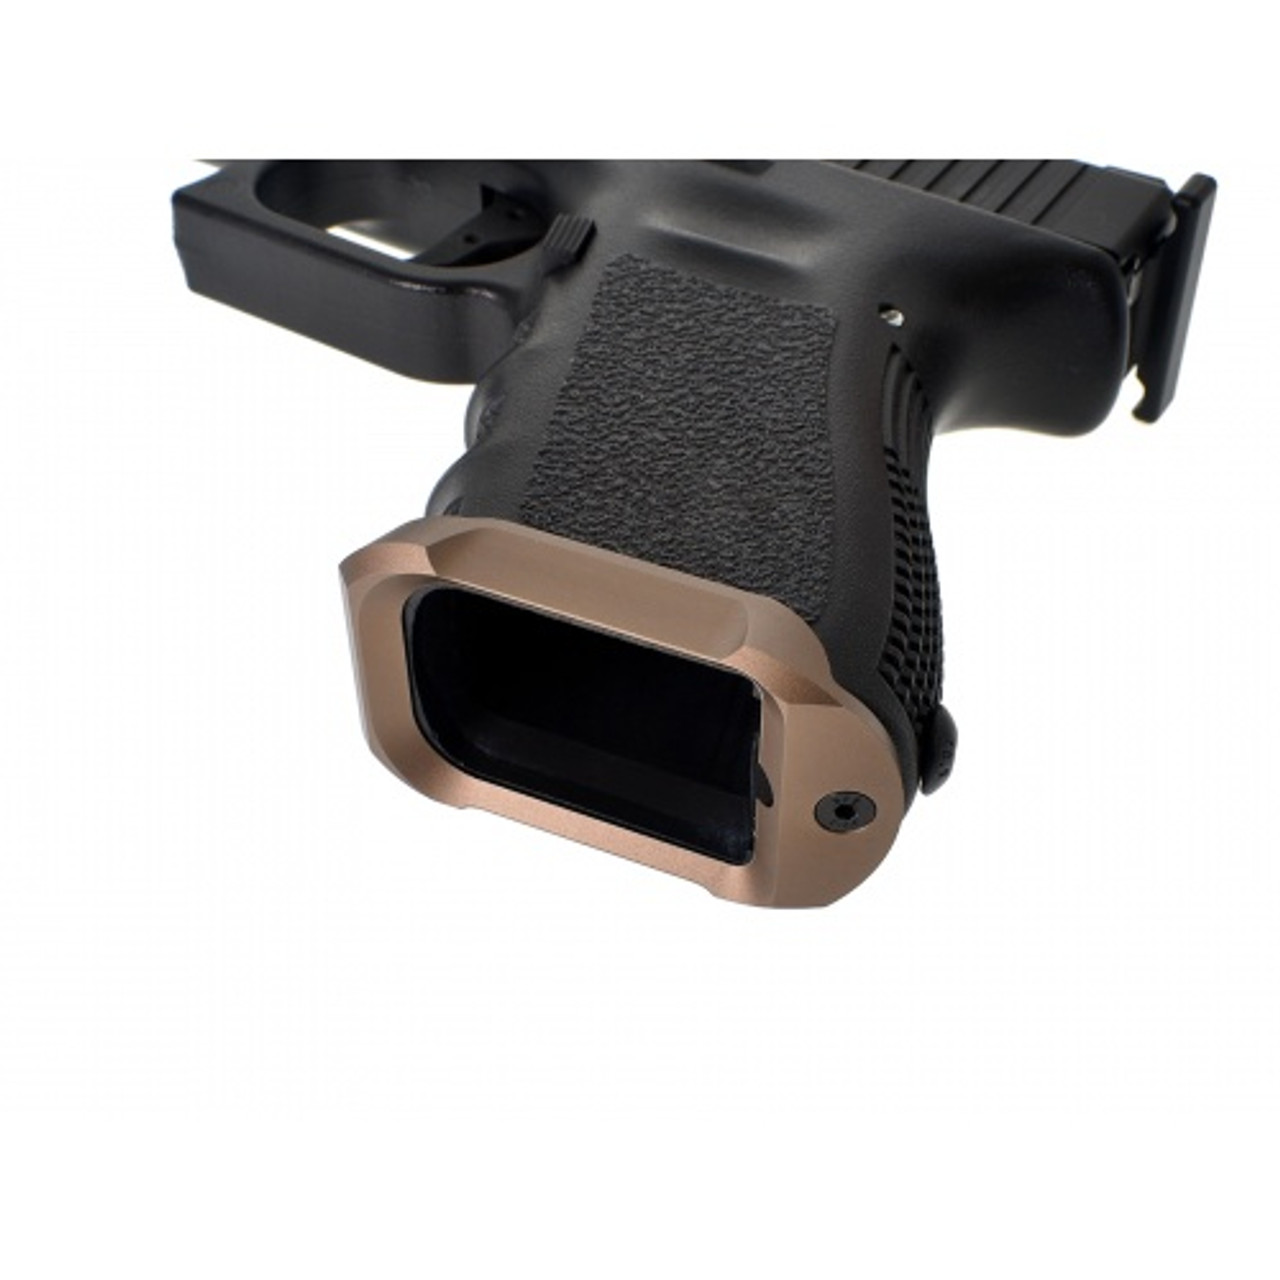 CowCow Technology - G19 Tactical Magwell - FDE